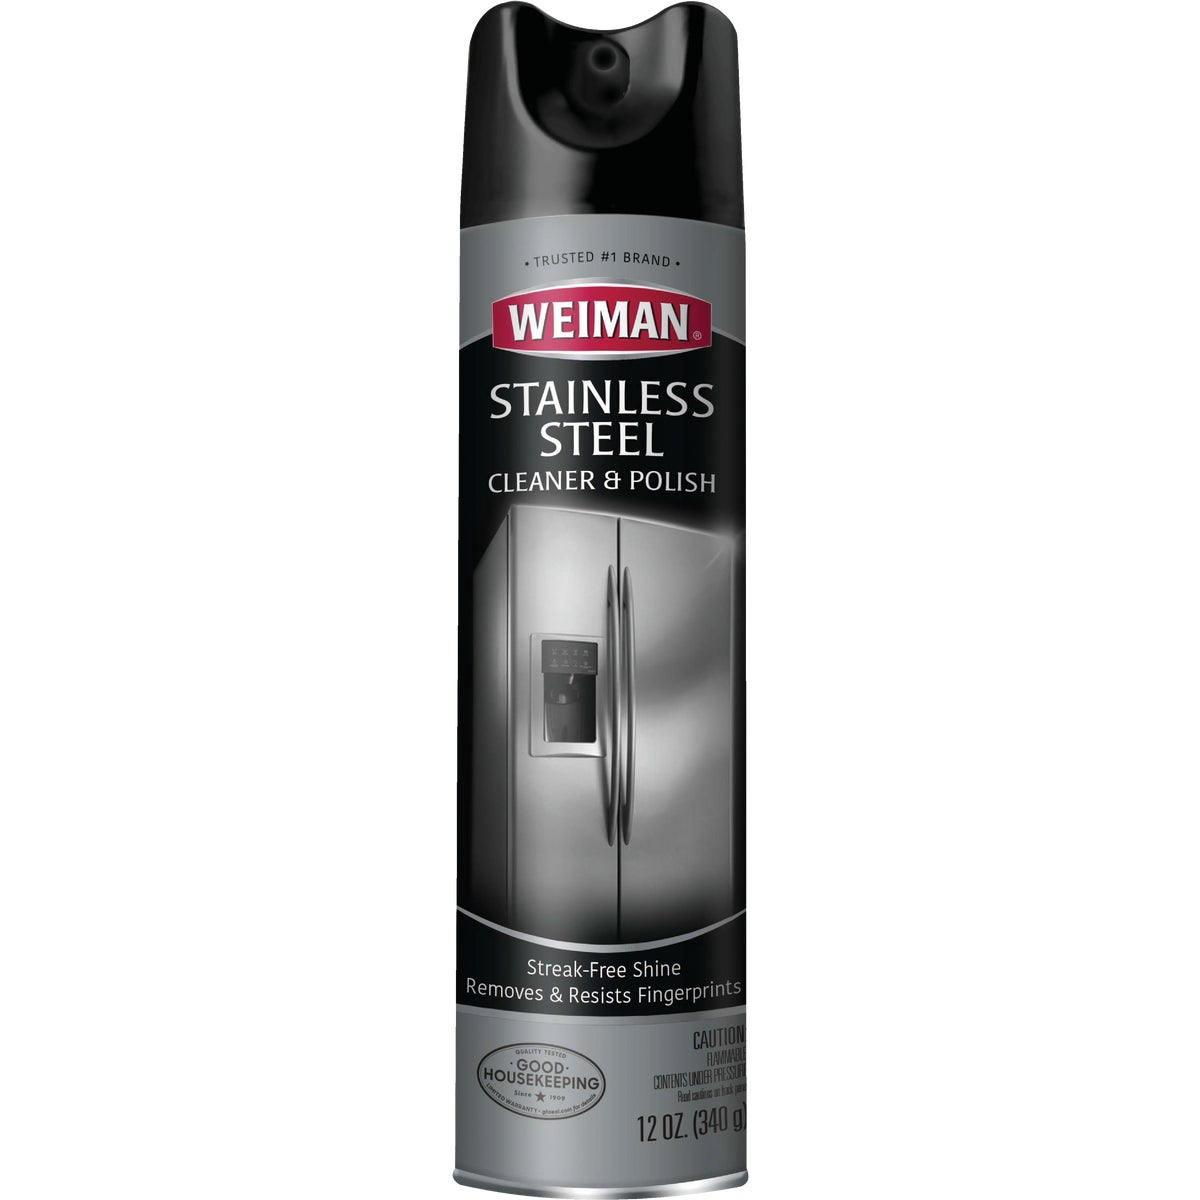 STAINLESS STEEL CLEANER - 02 by Weiman Products Llc